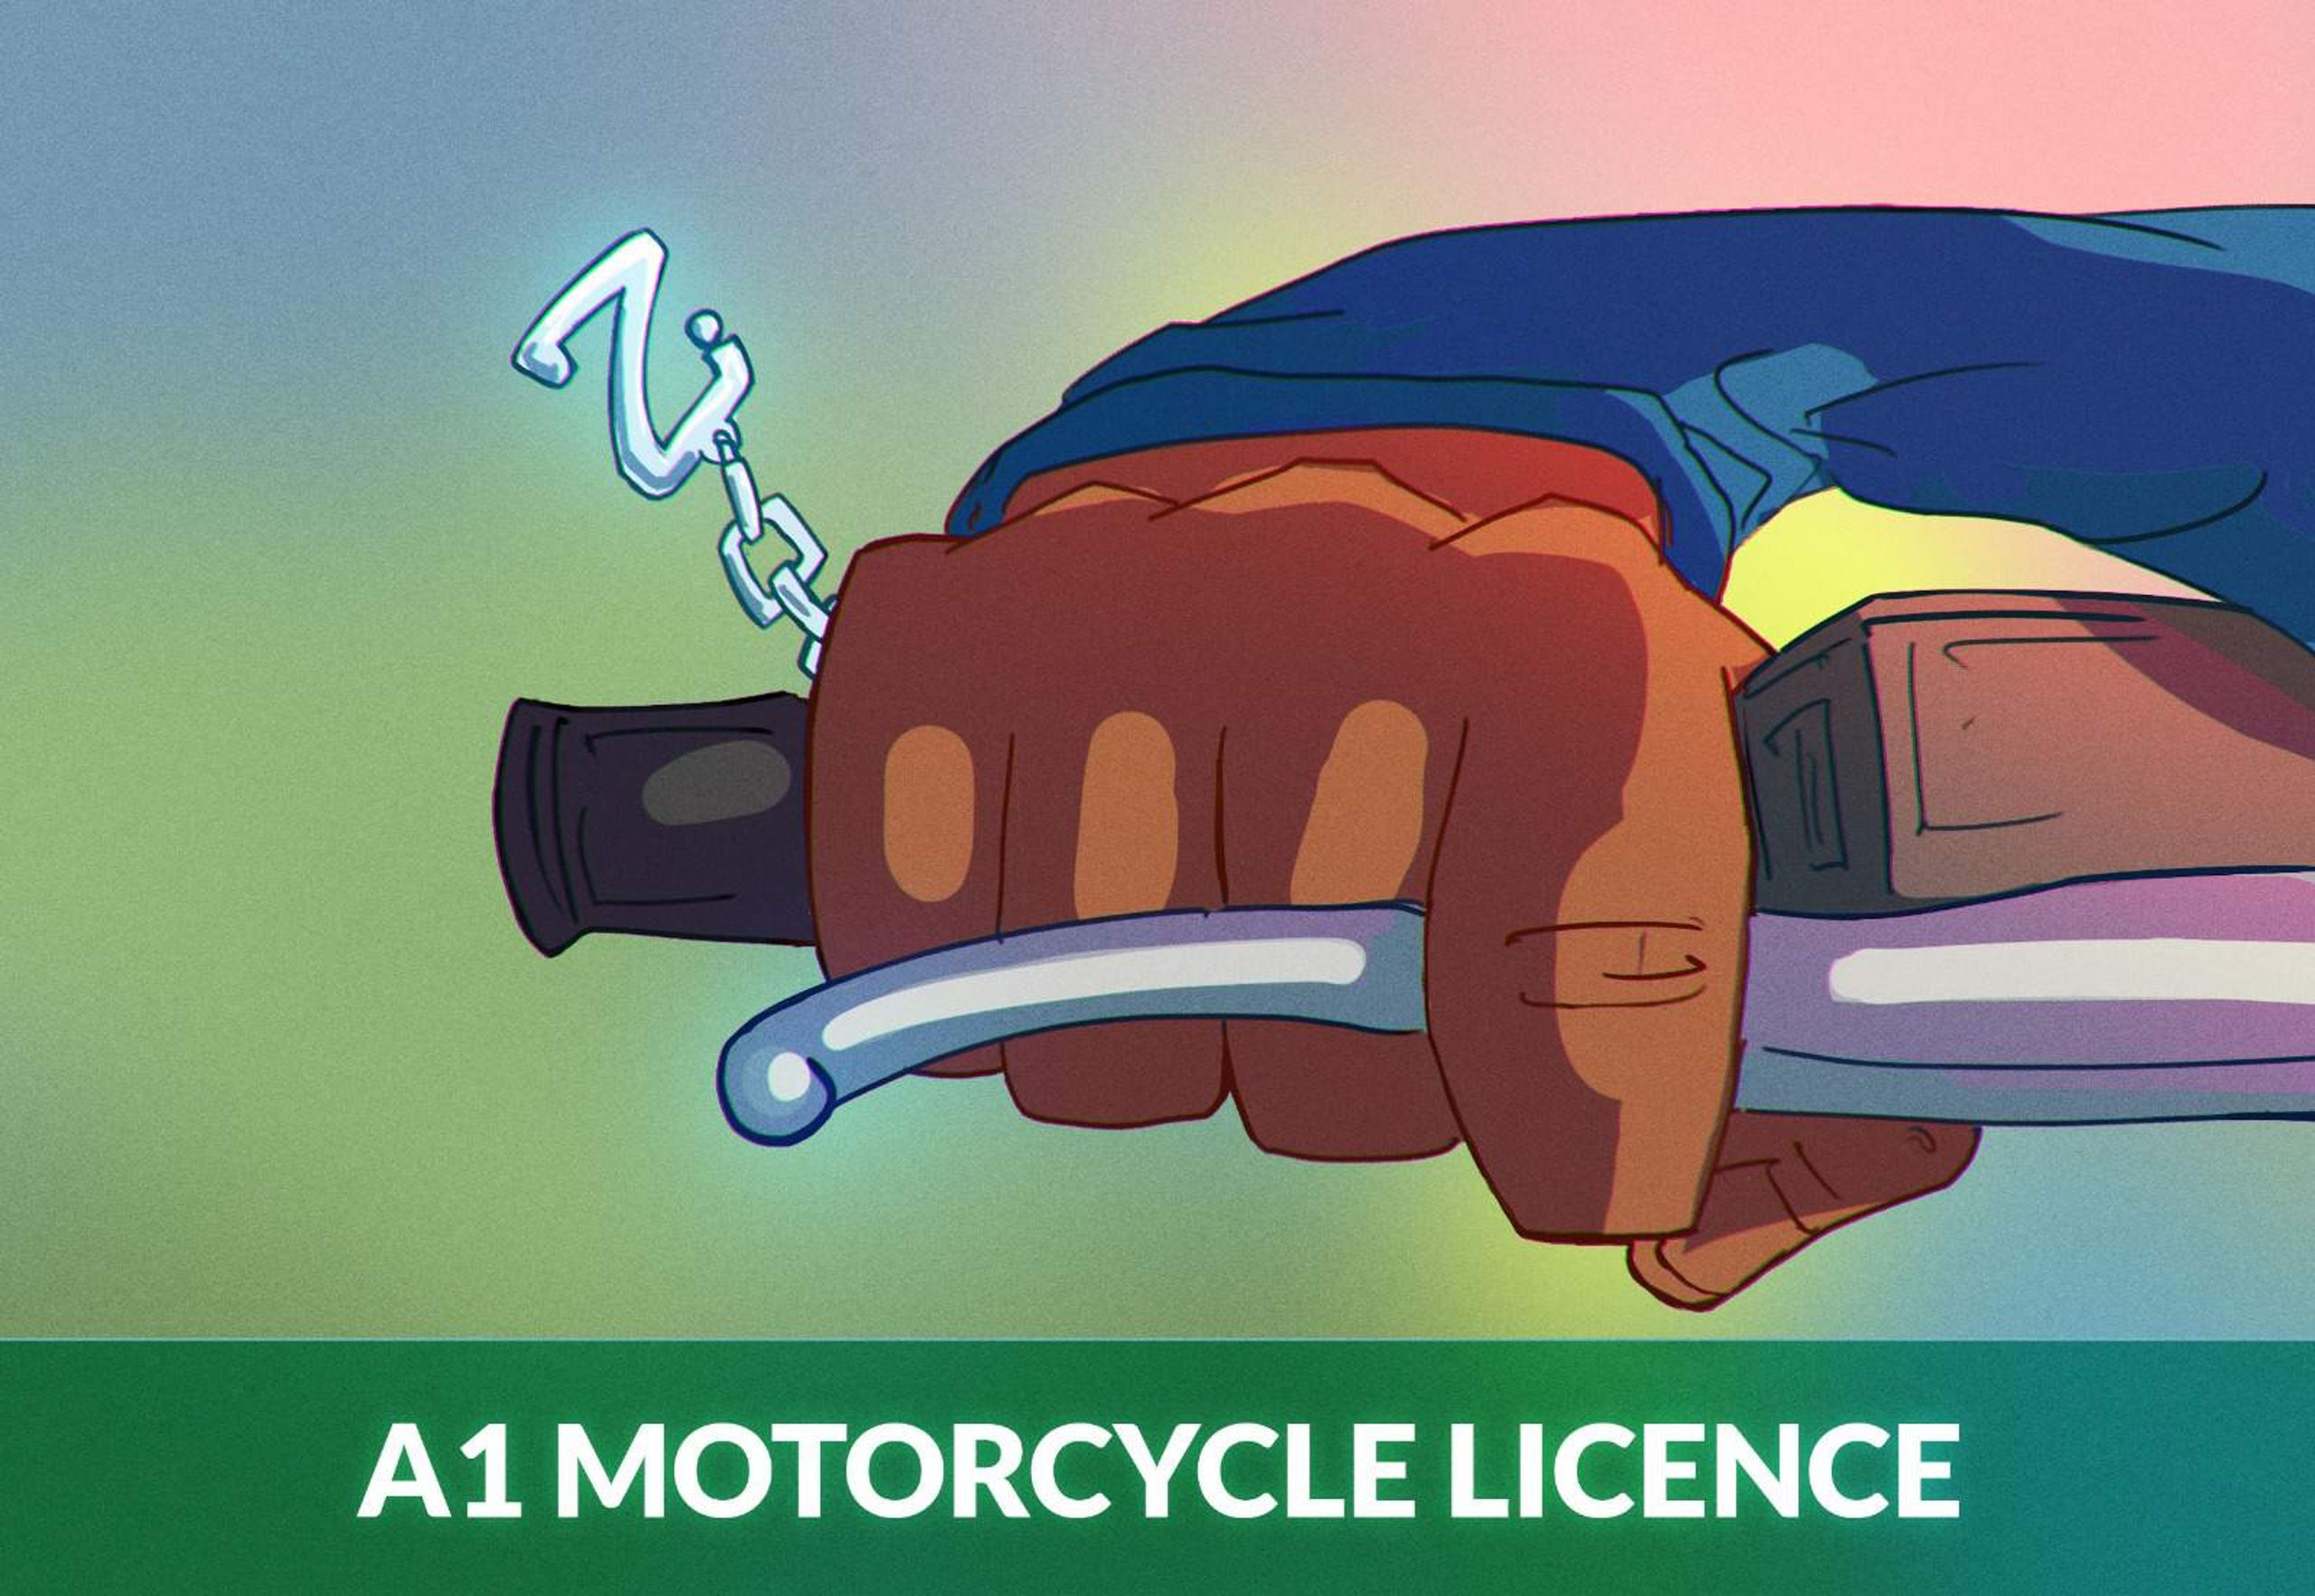 A1 Motorcycle Licence: All You Need to Know